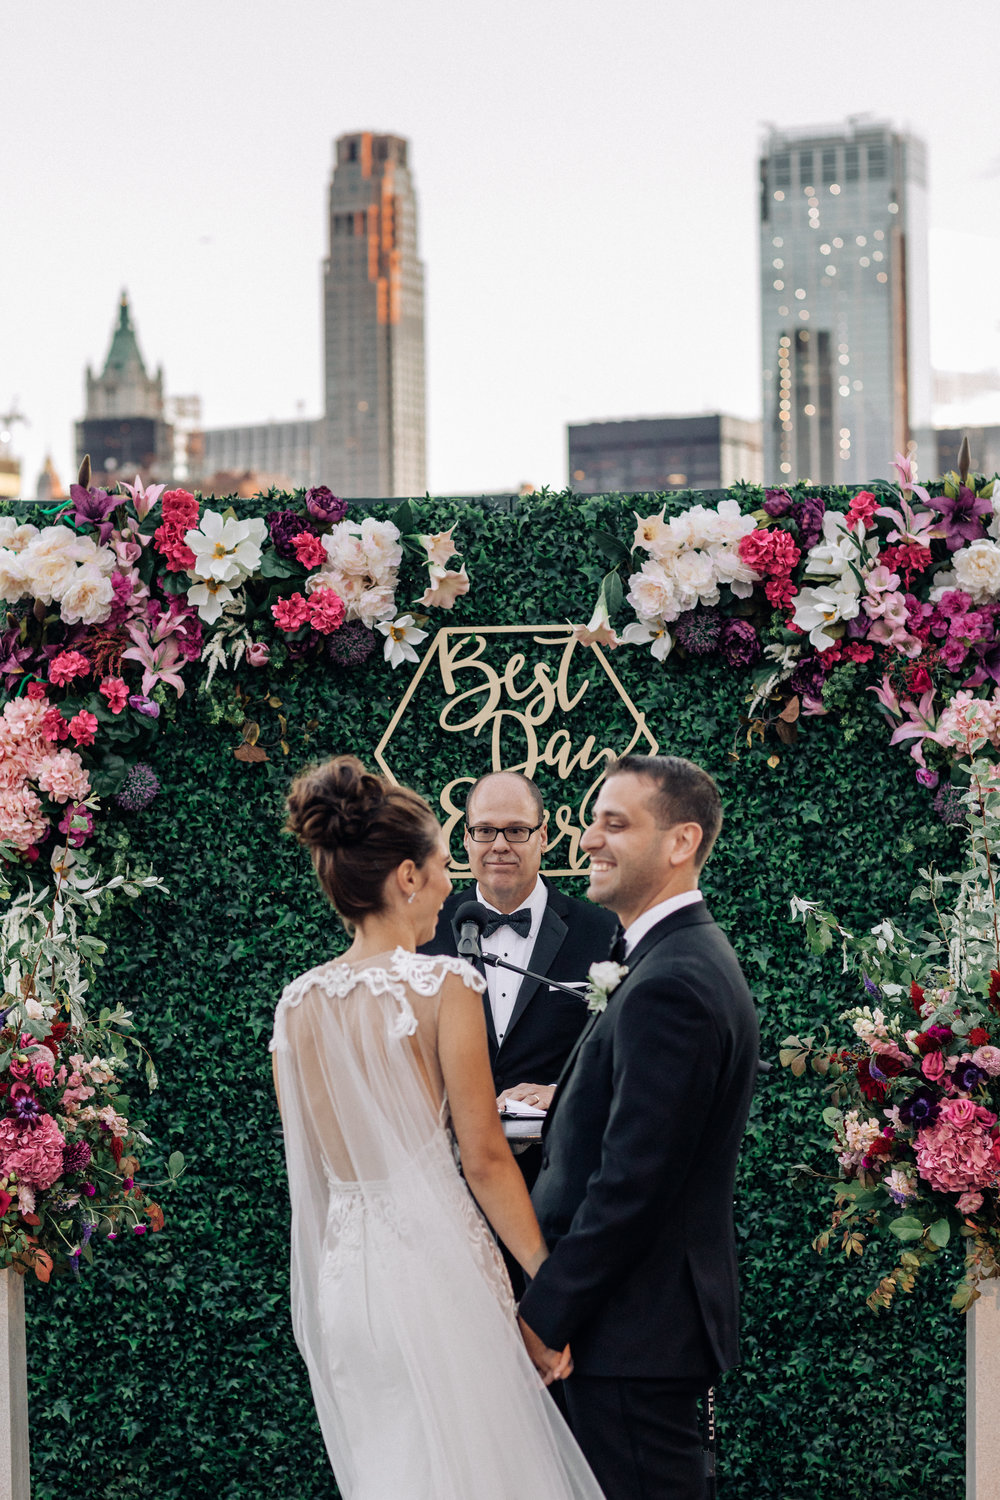 Hailley+Howard_Manhattan+Wedding_The+Tibecca+Rooftop-338.jpg